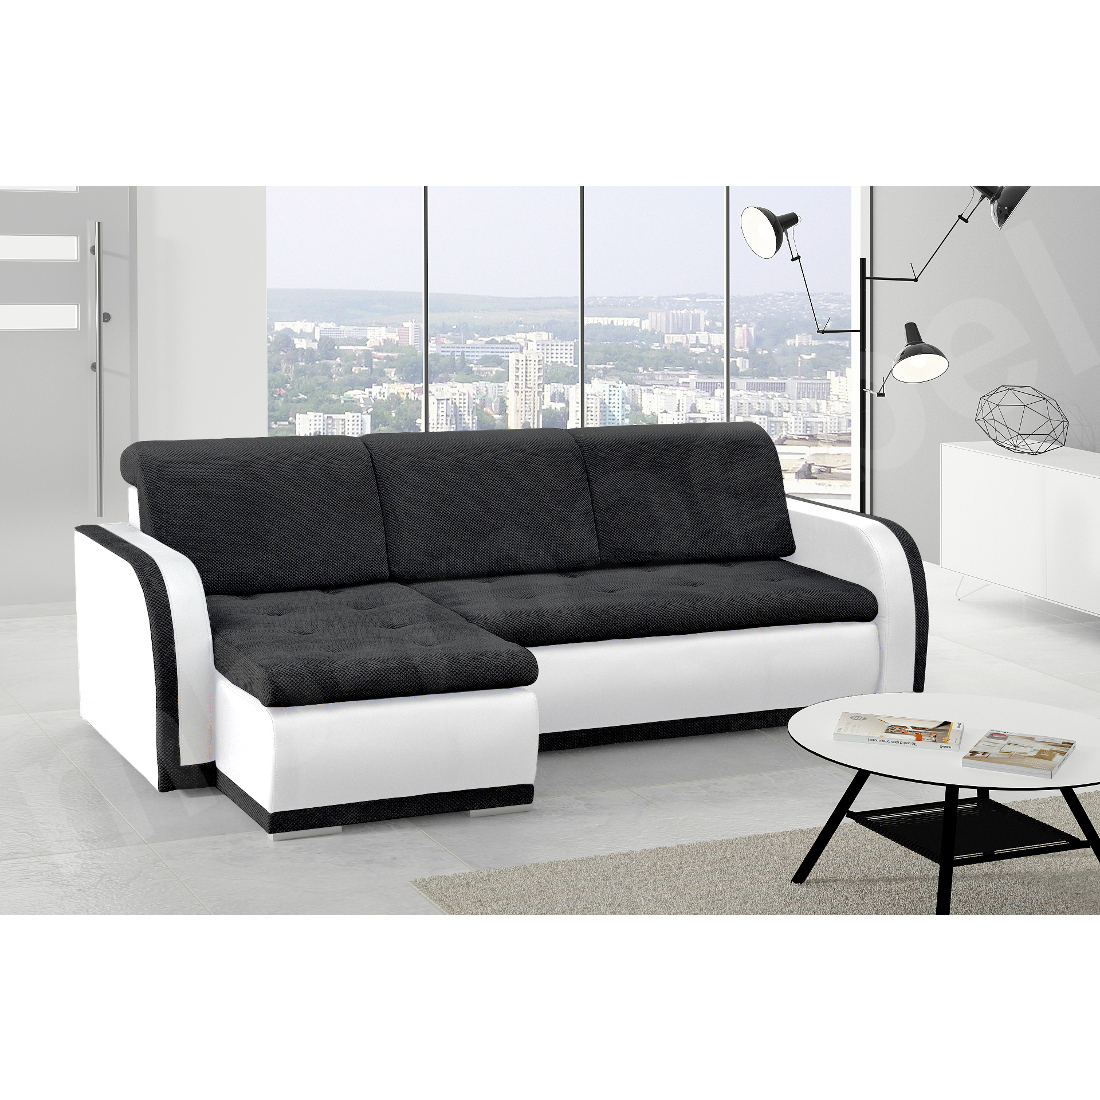 ecksofa vero i schwarz wei m bel muller braun. Black Bedroom Furniture Sets. Home Design Ideas